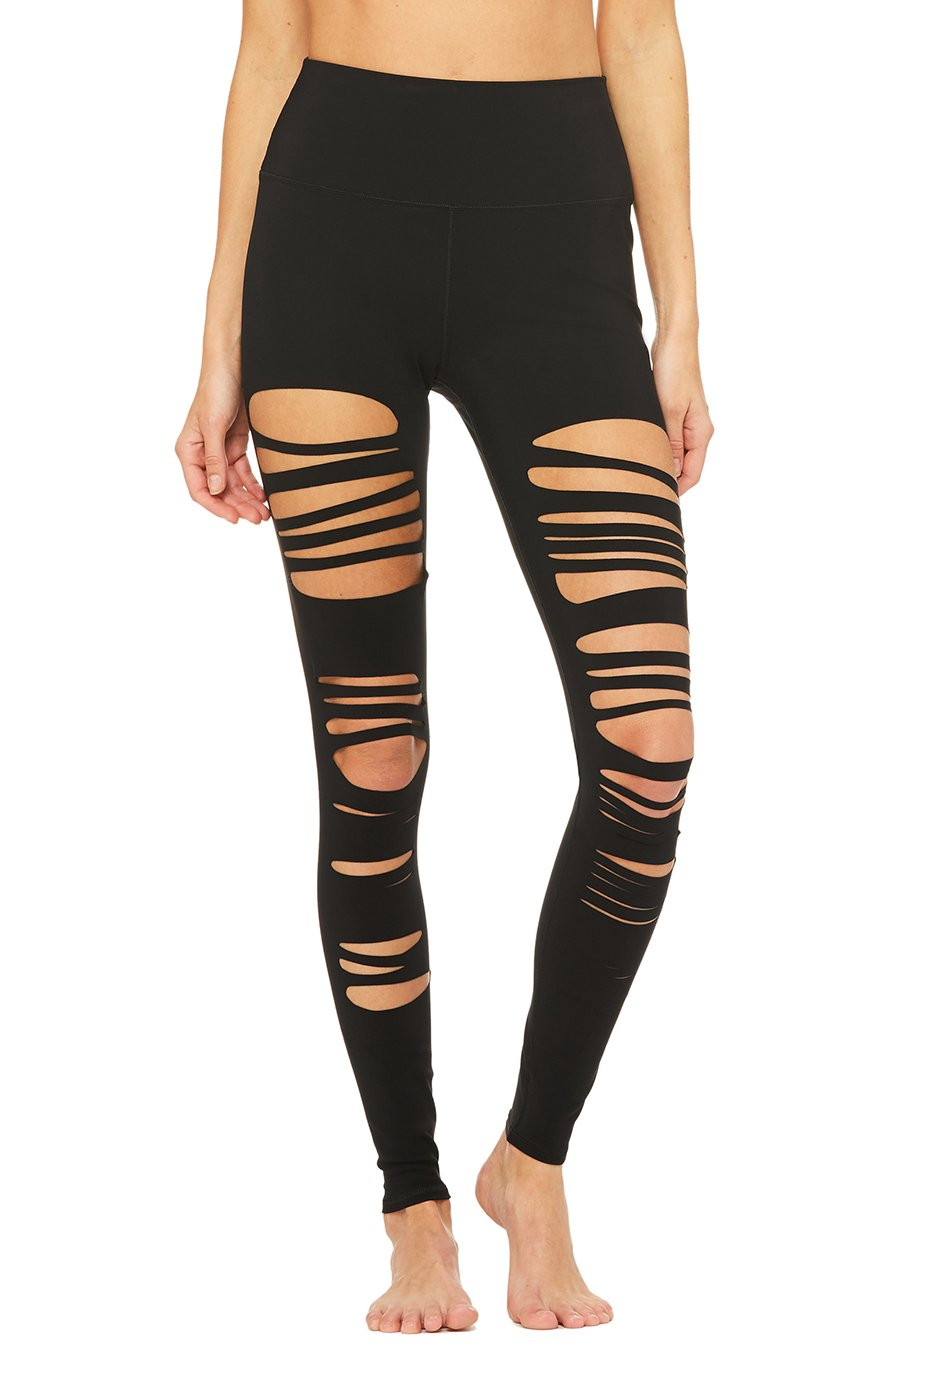 Alo Yoga Extreme Ripper Warrior Legging - Black